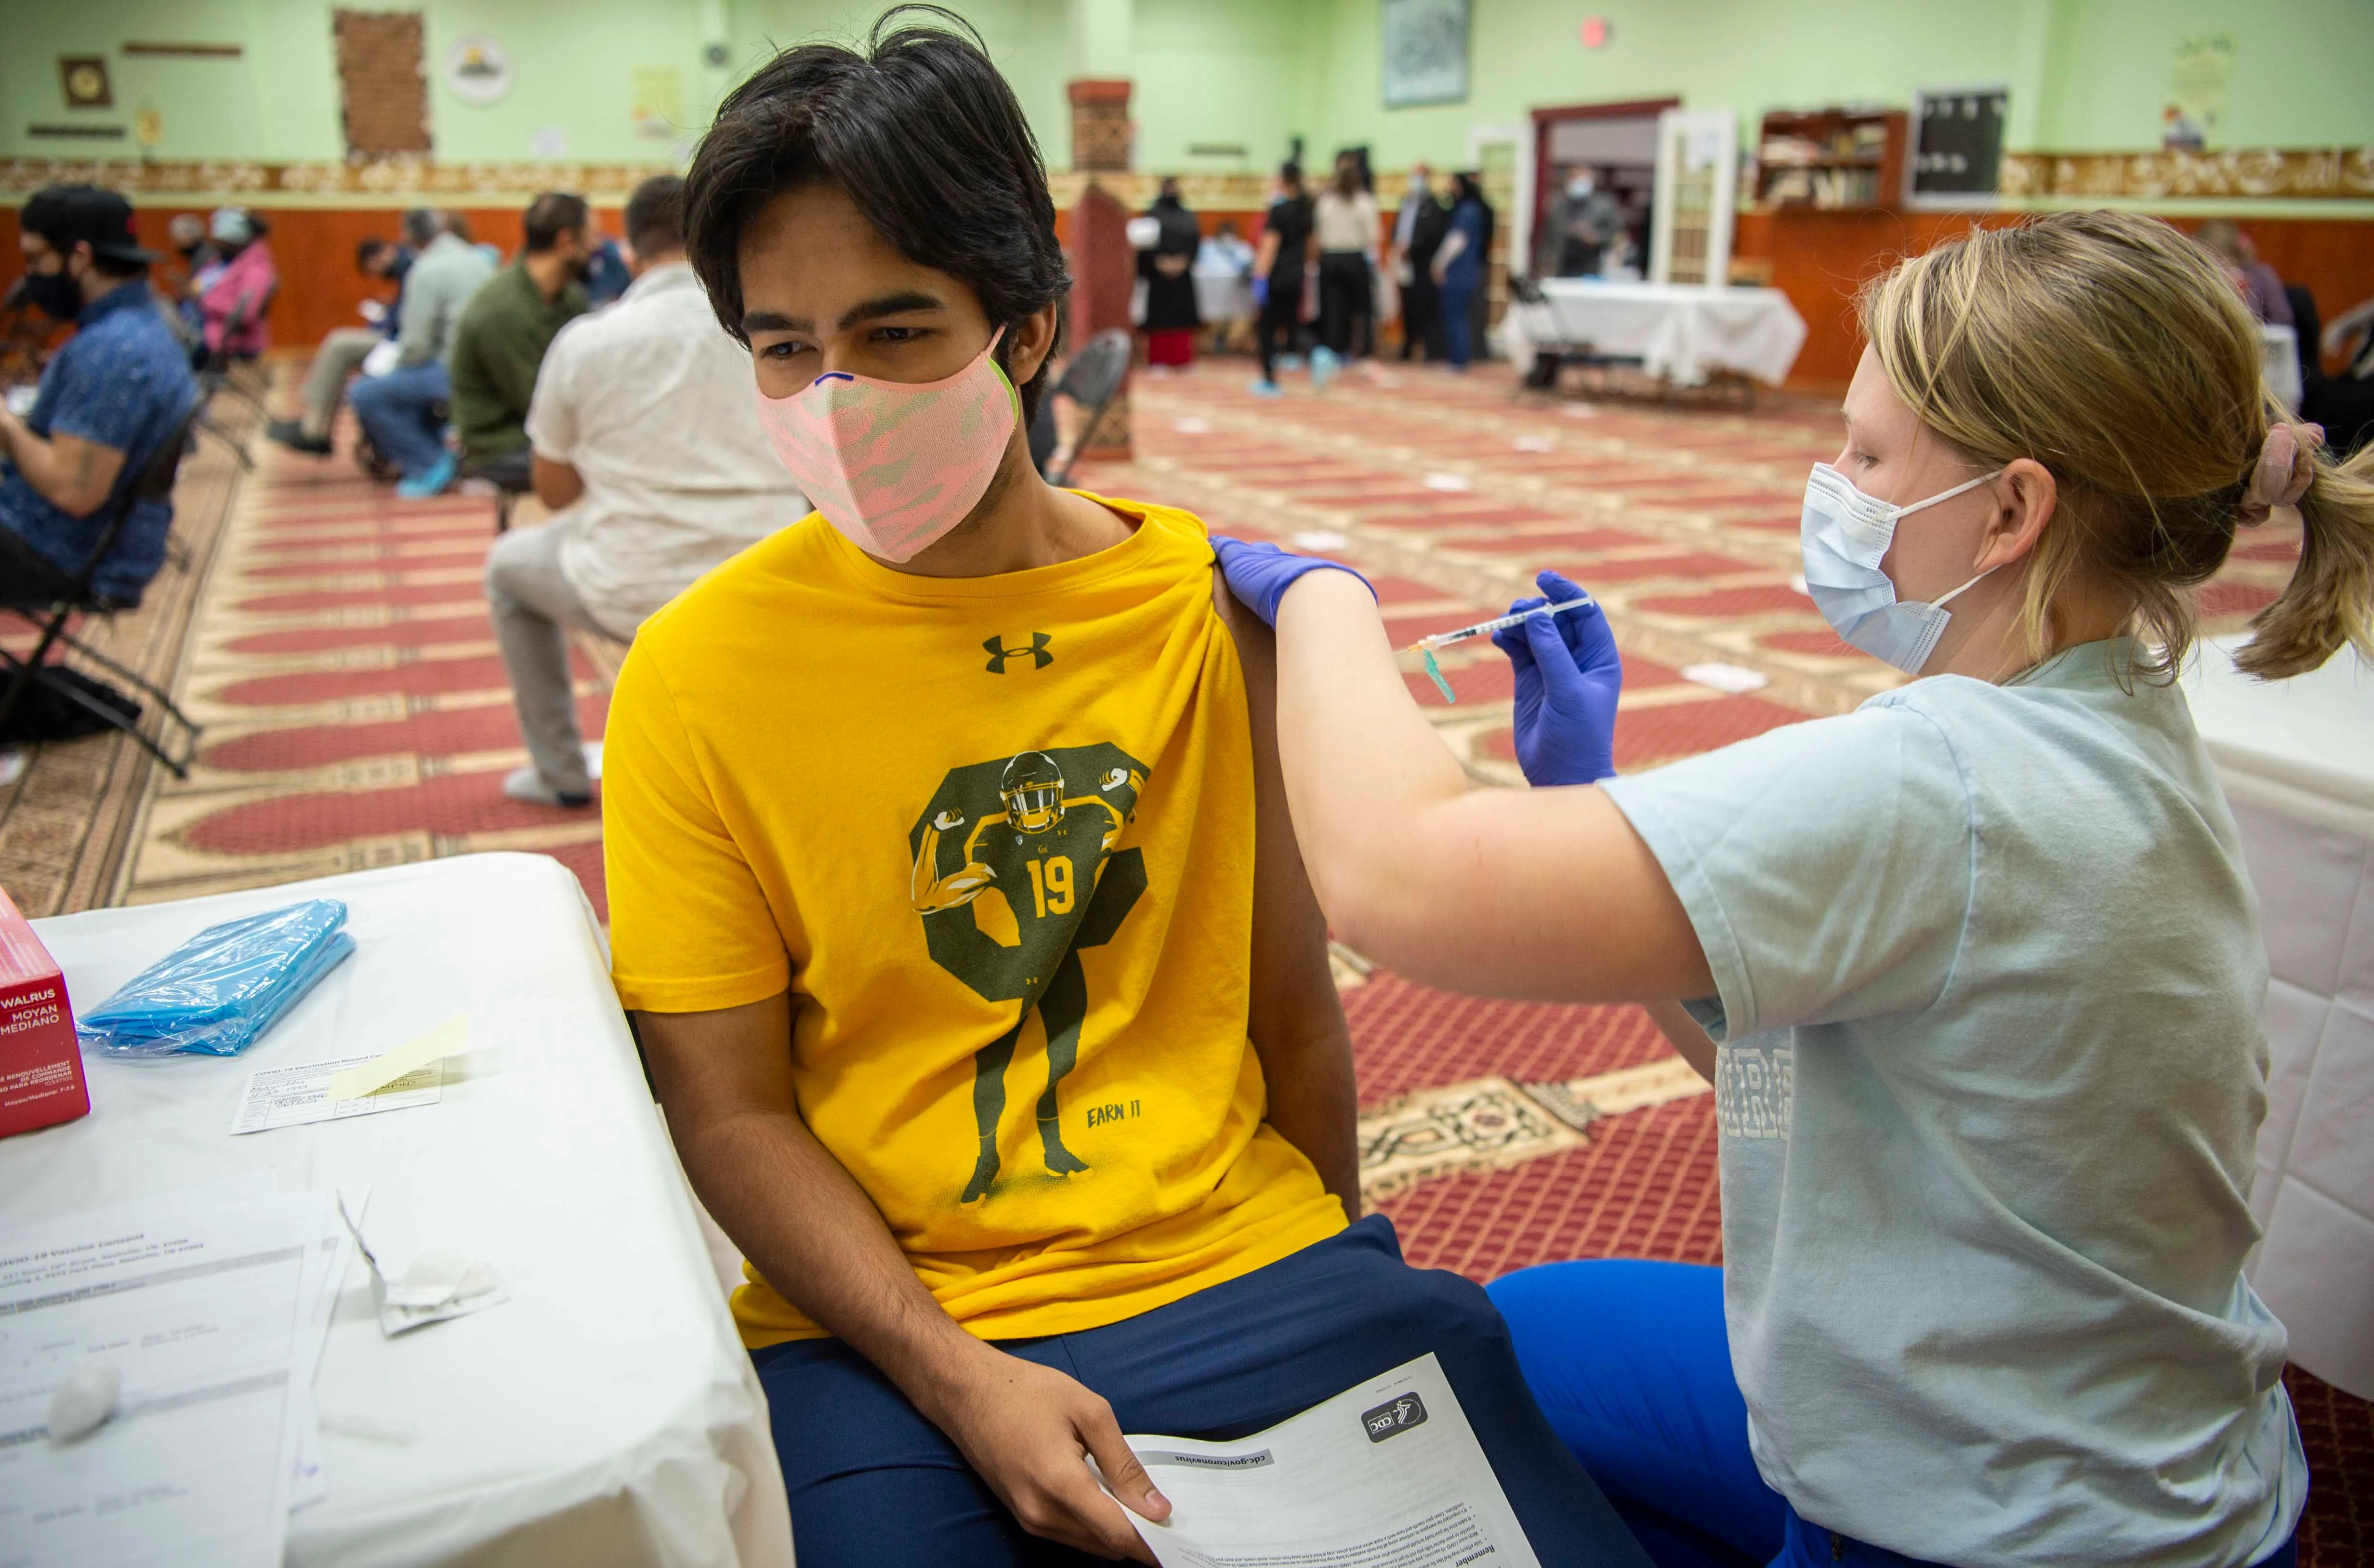 Ibrahim Mobyuddin receives his COVID-19 vaccine from APRN Molly Shine at the Salahadeen Center in Nashville, Tenn. On Thursday, March 11, 2021. The Salahadeen Center has partnered with the Metro Health department to serve the Kurdish community and all sub-communities. represented by hosting the COVID-19 vaccination clinic inside the mosque.